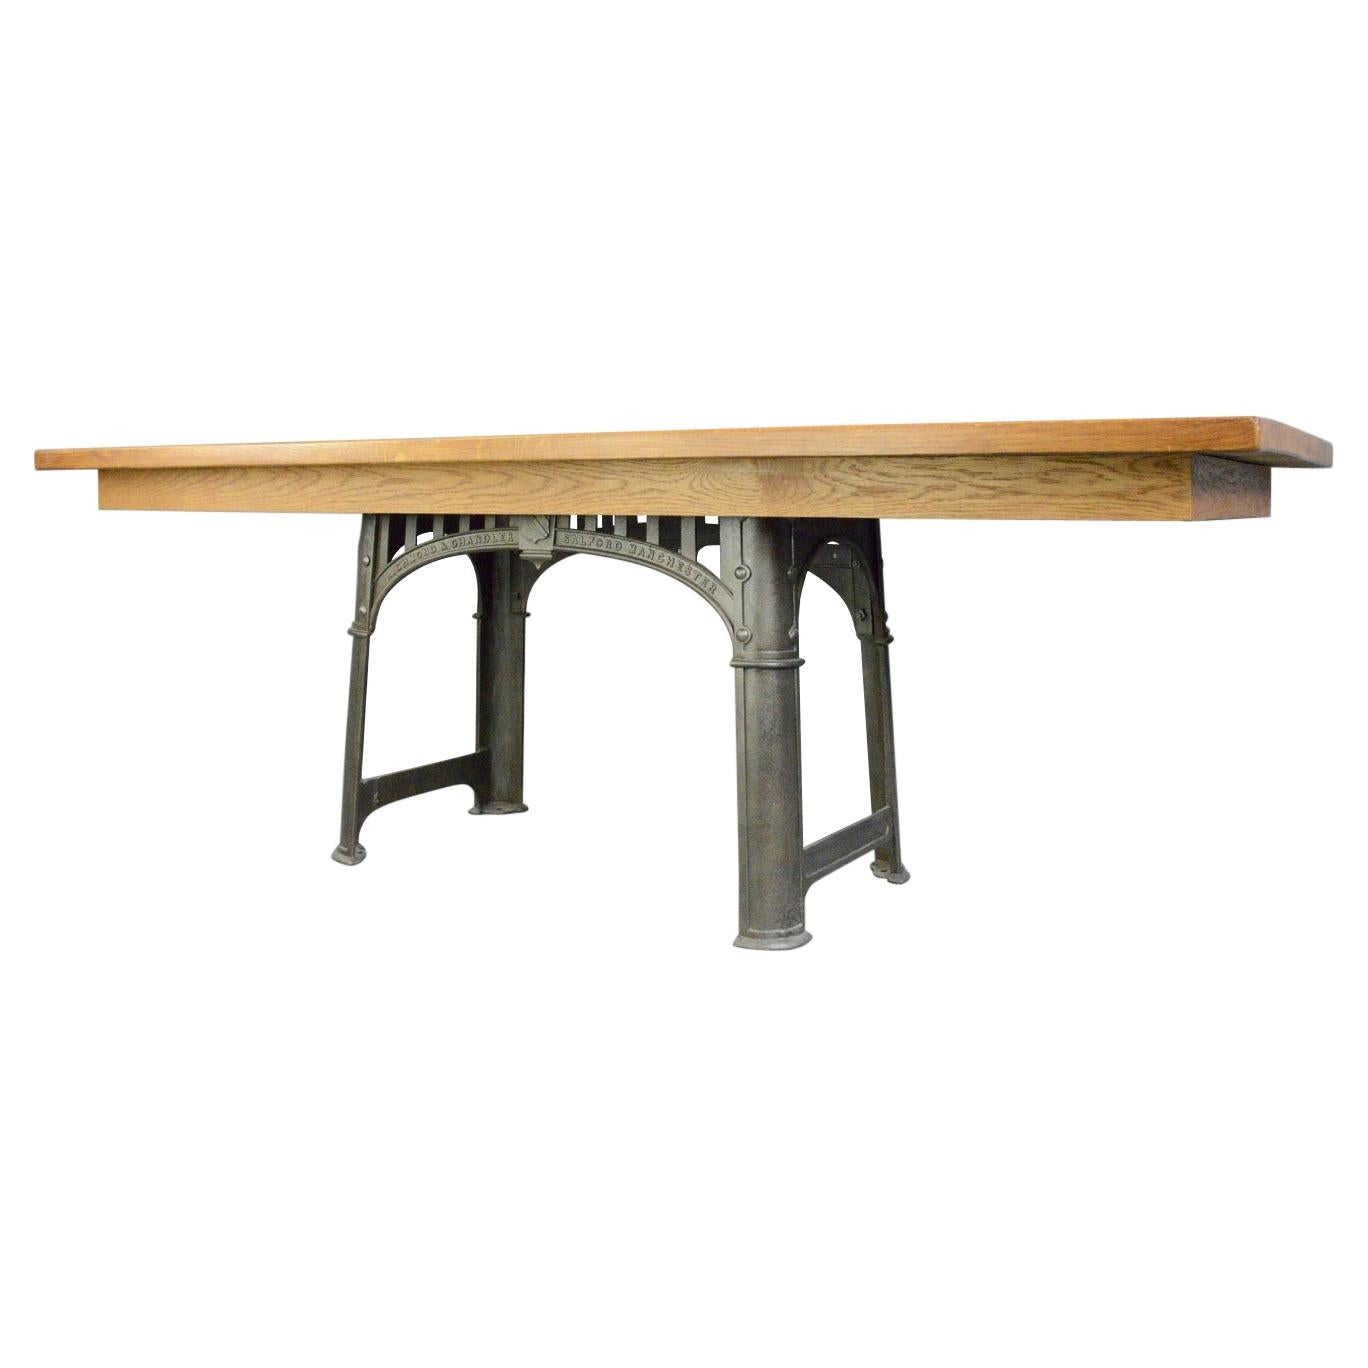 Large Industrial Table by Richmond & Chandler, Circa 1910